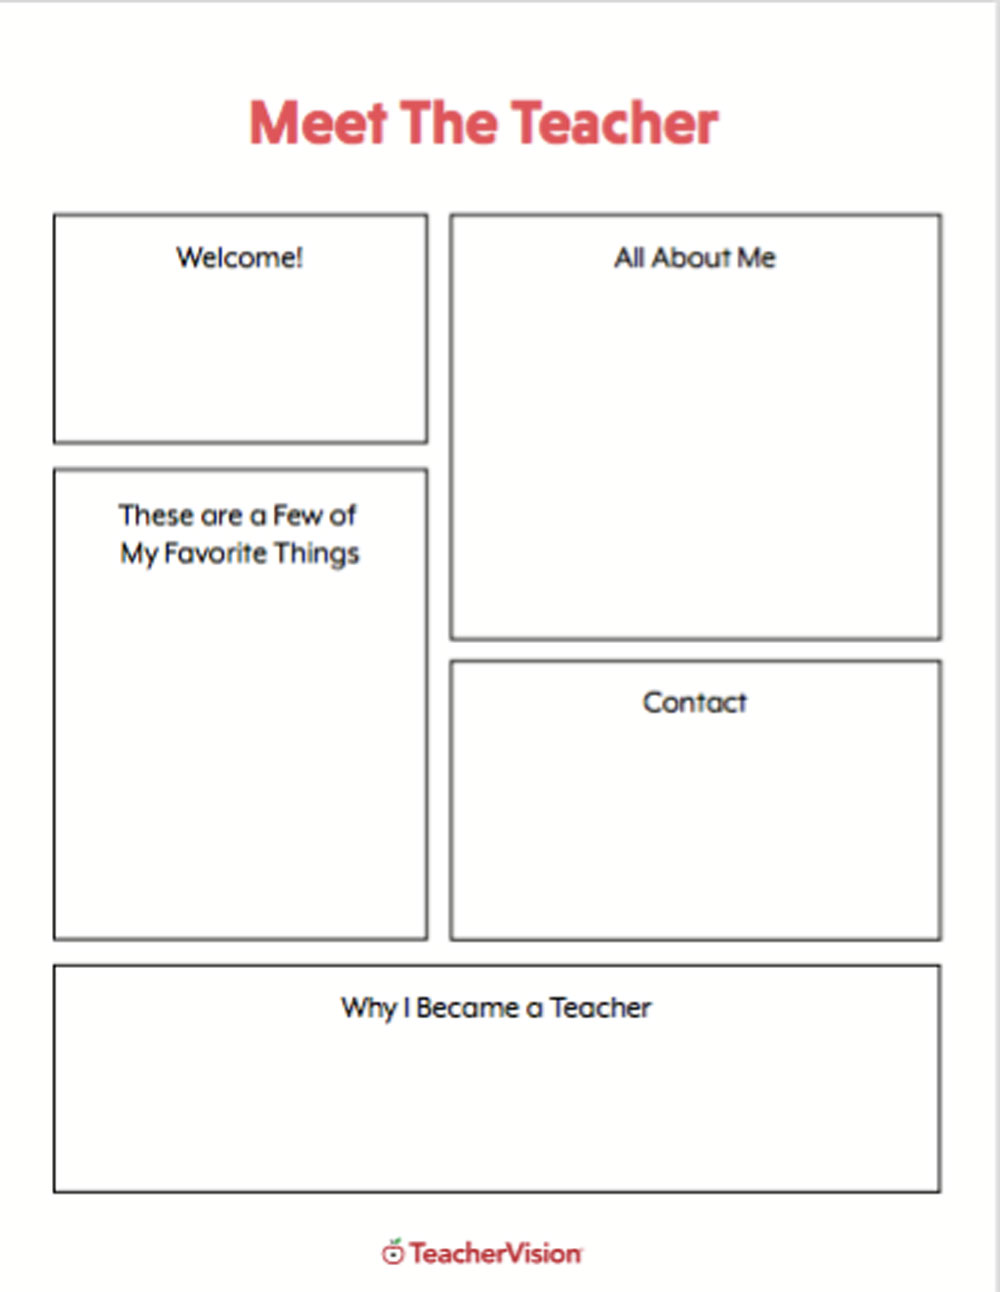 A printable for teachers to introduce themselves to students at the beginning of the school year